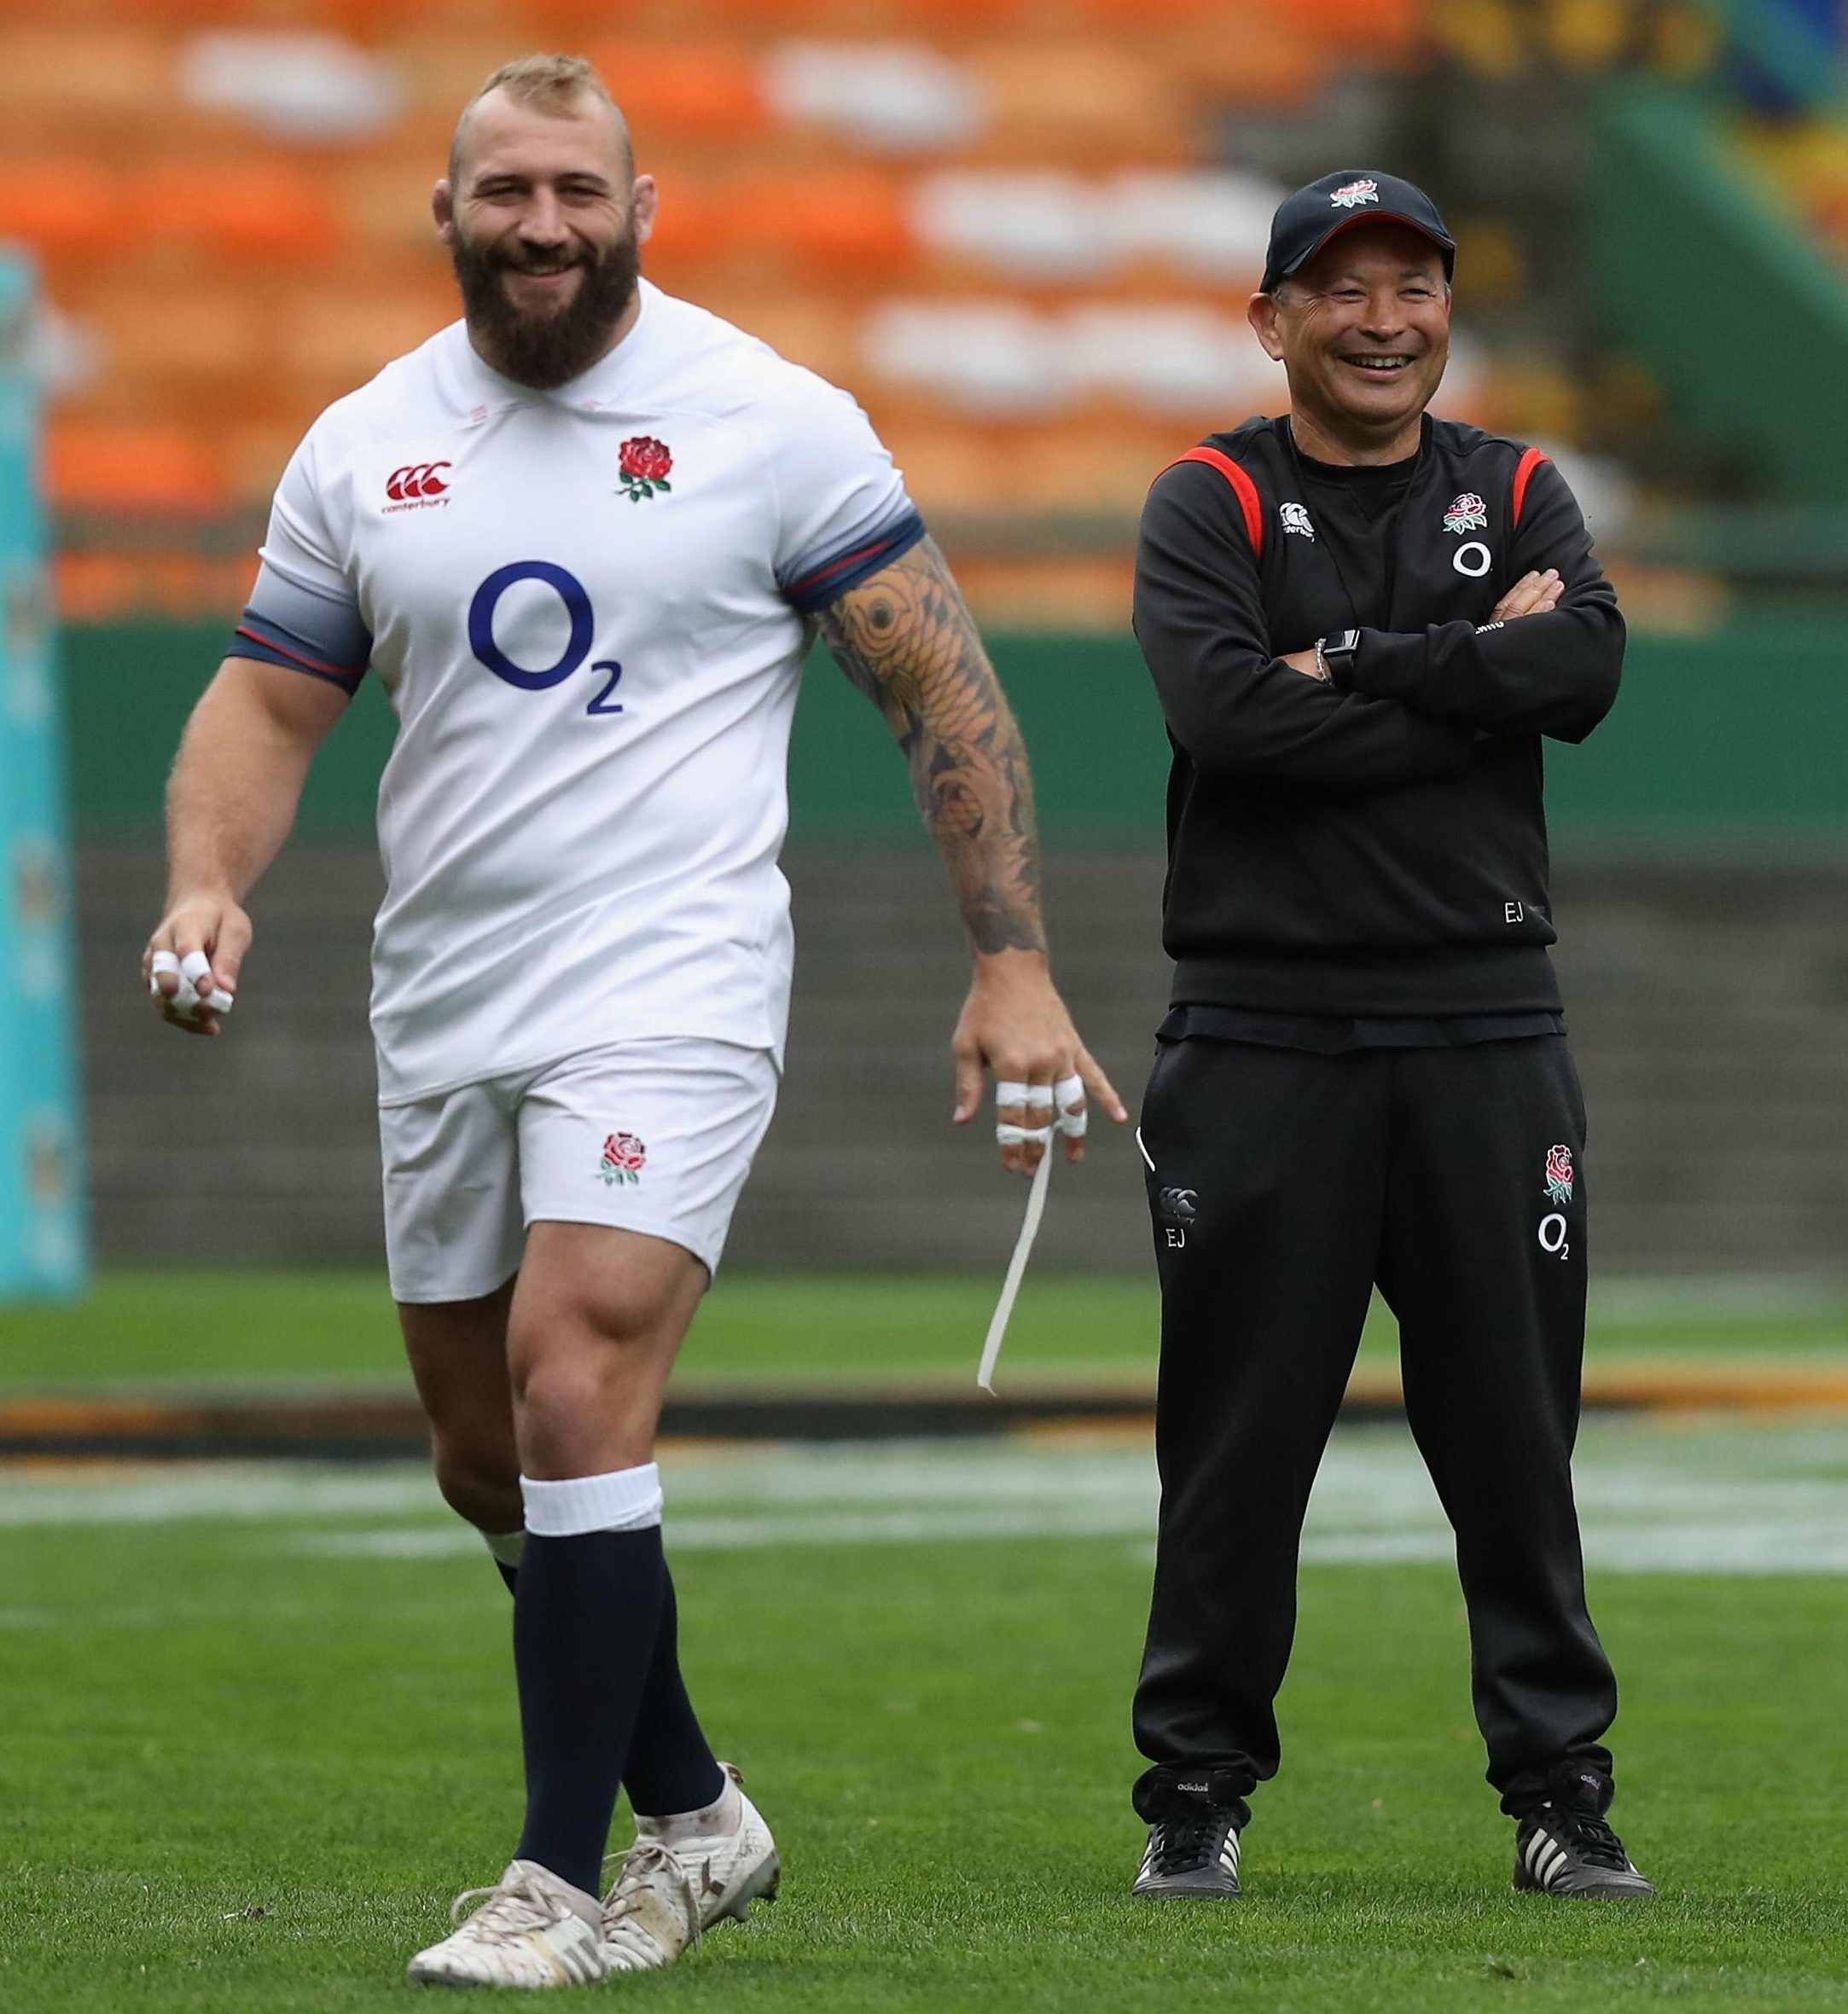 Red Rose prop Joe Marler jokes with coach Eddie Jones but England need to win the Third Test to avoid a whitewash in South Africa